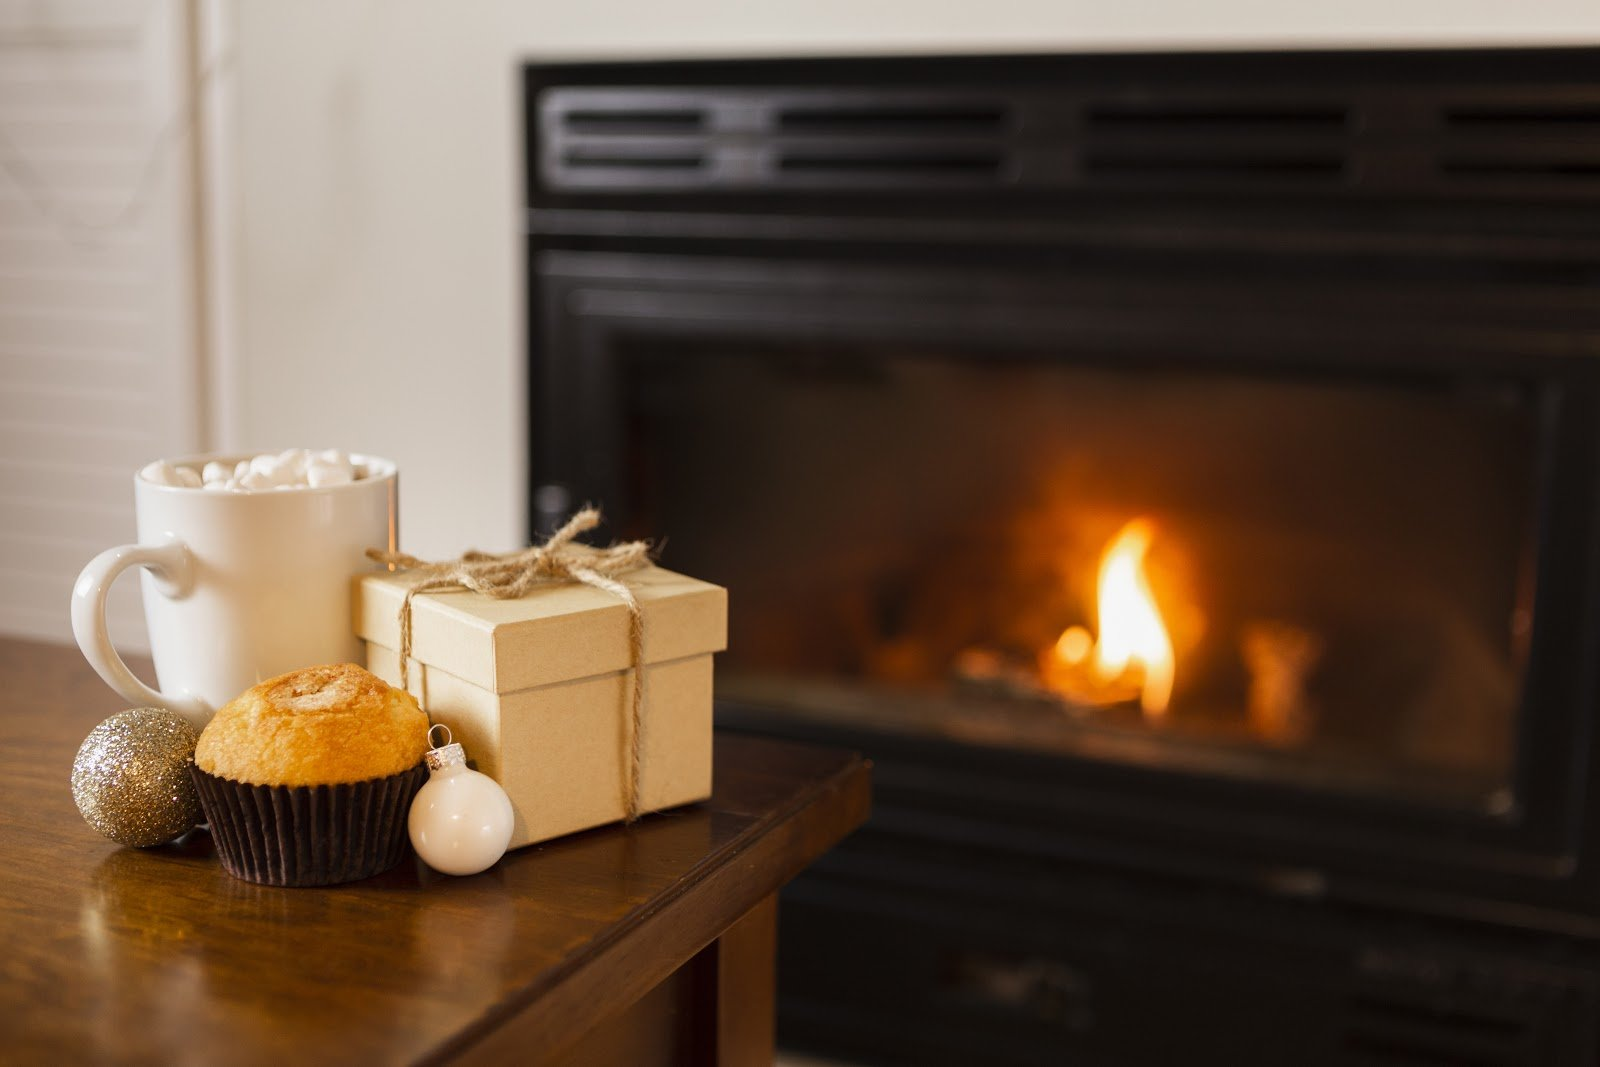 hot-chocolate-muffin-and-small-gift-in-front-of-lit-gas-fireplace-insert